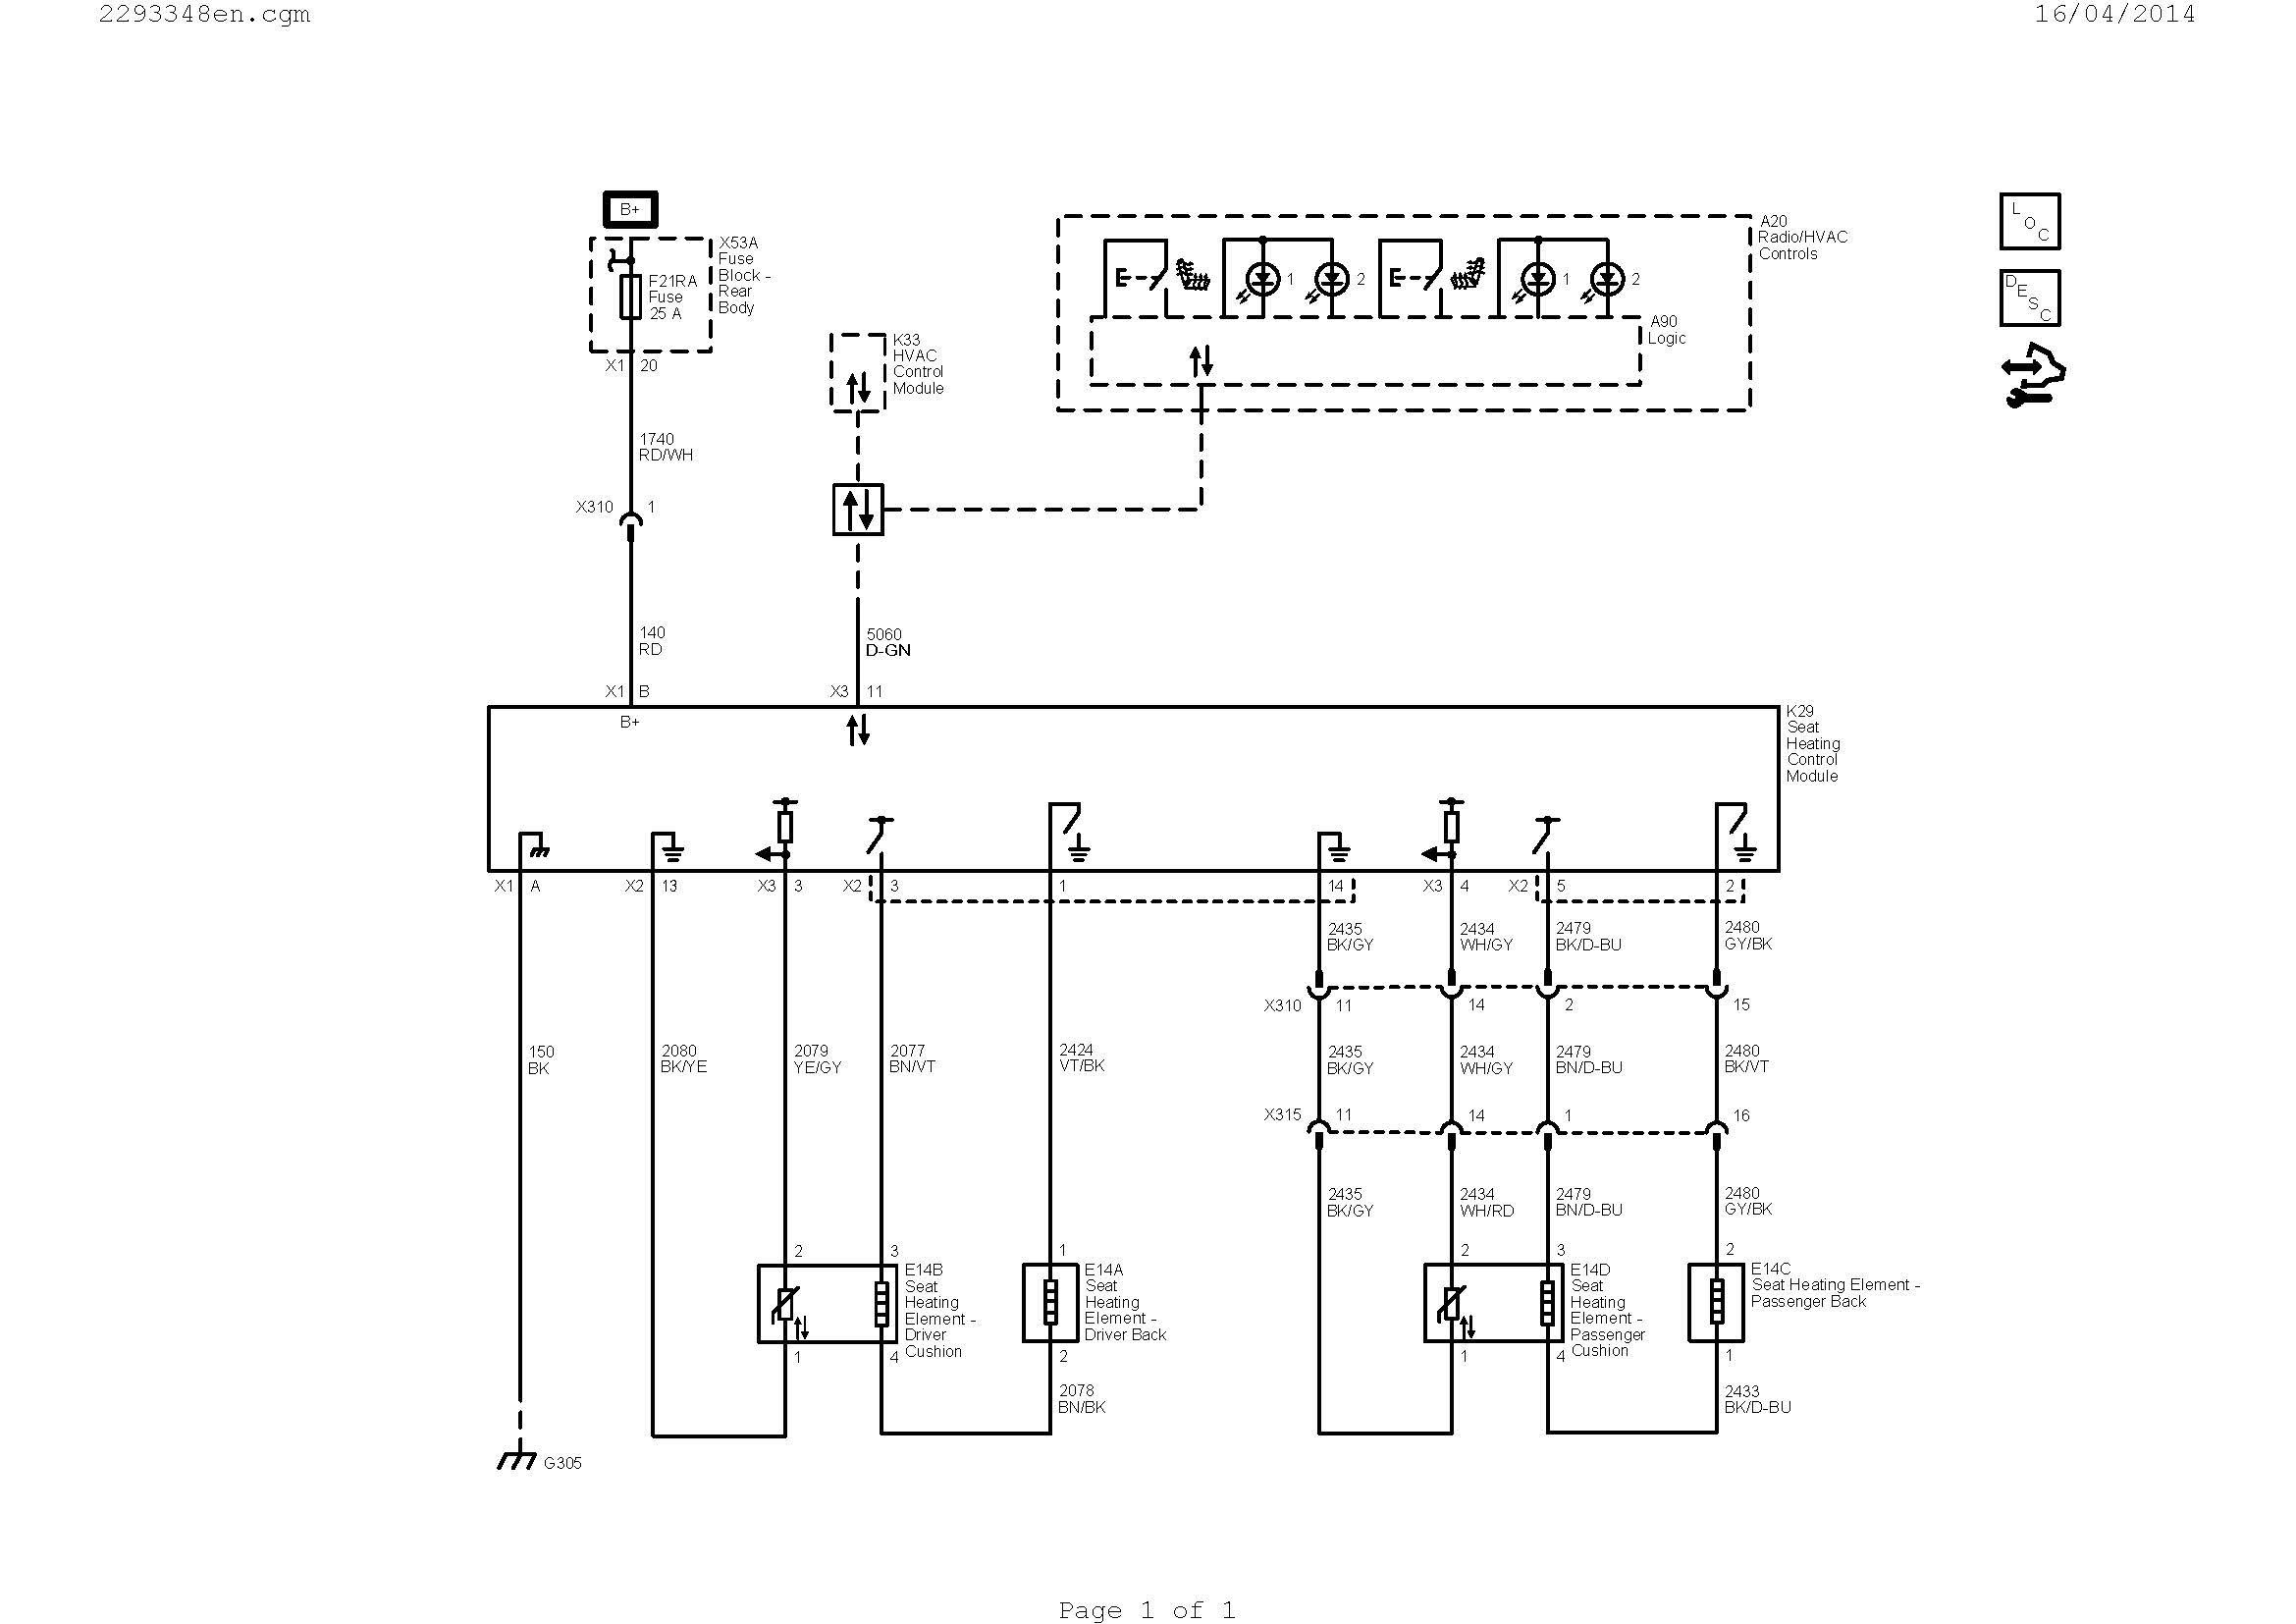 Motorized Shade Wiring Diagram Electrical Diagrams Victory Refrigeration For Blinds Sample